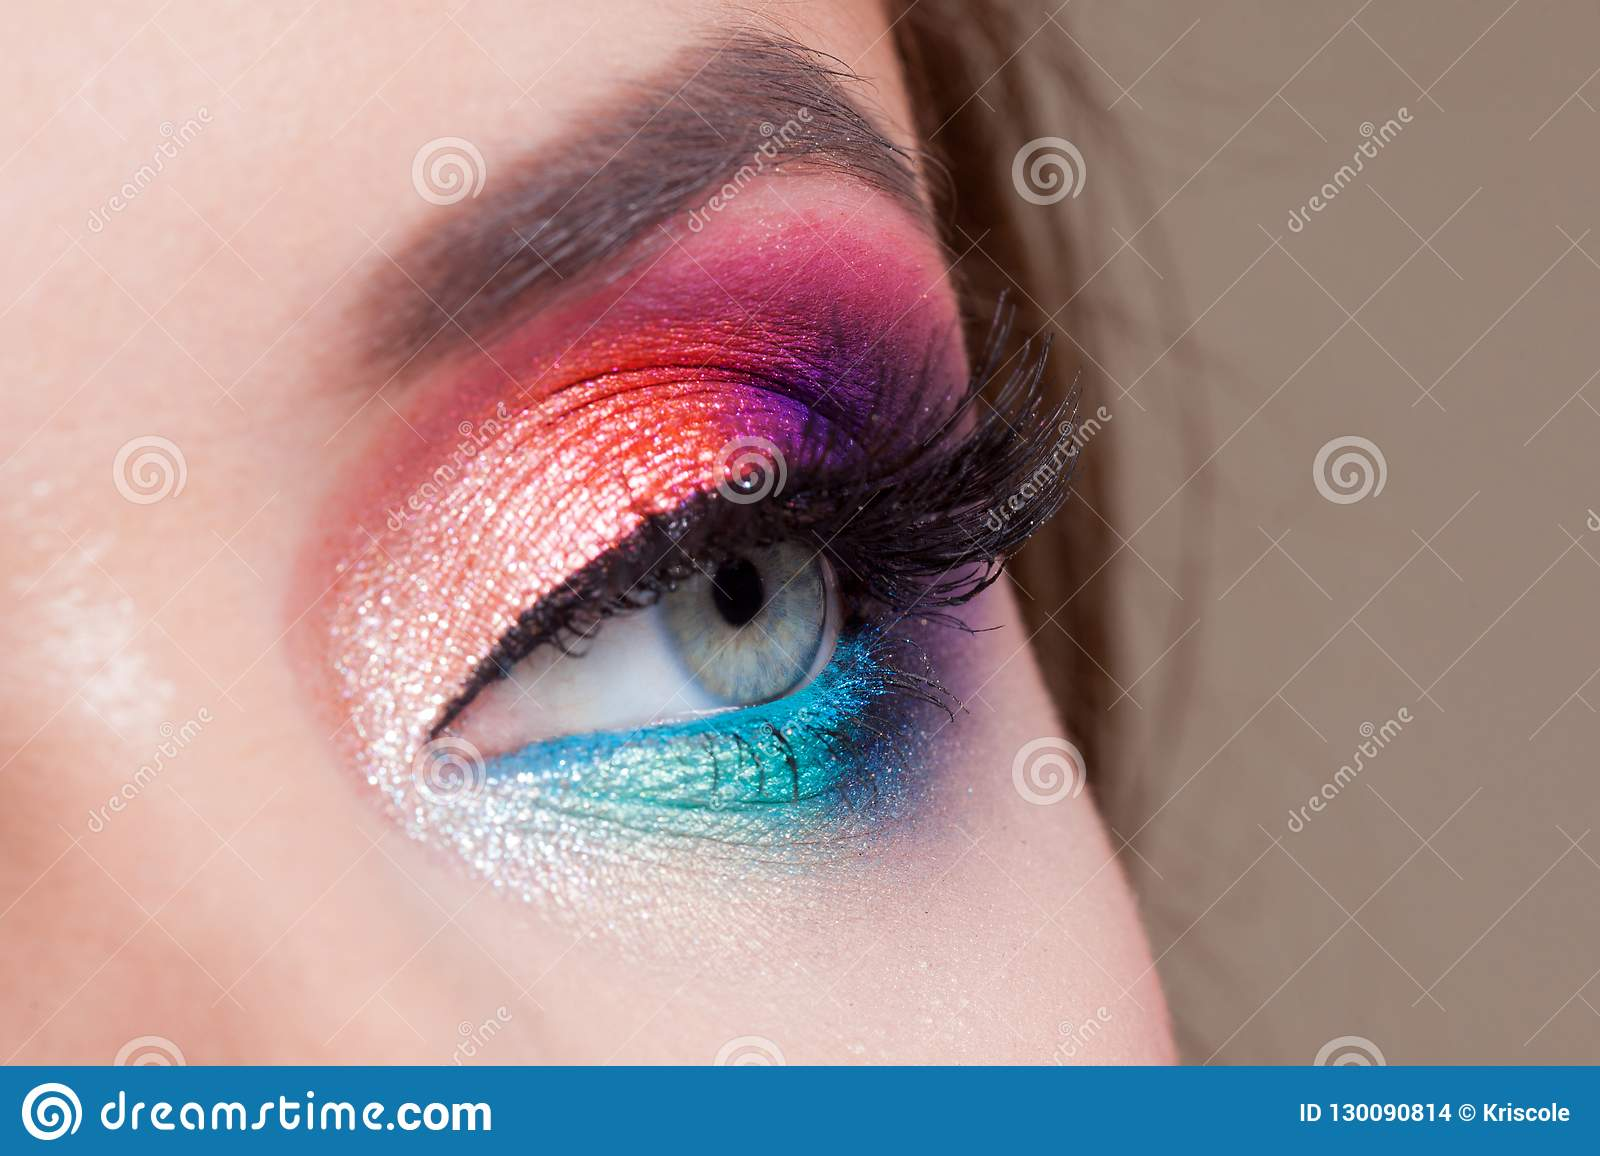 Bright Eye Makeup Pink And Blue Color Colored Eyeshadow Stock